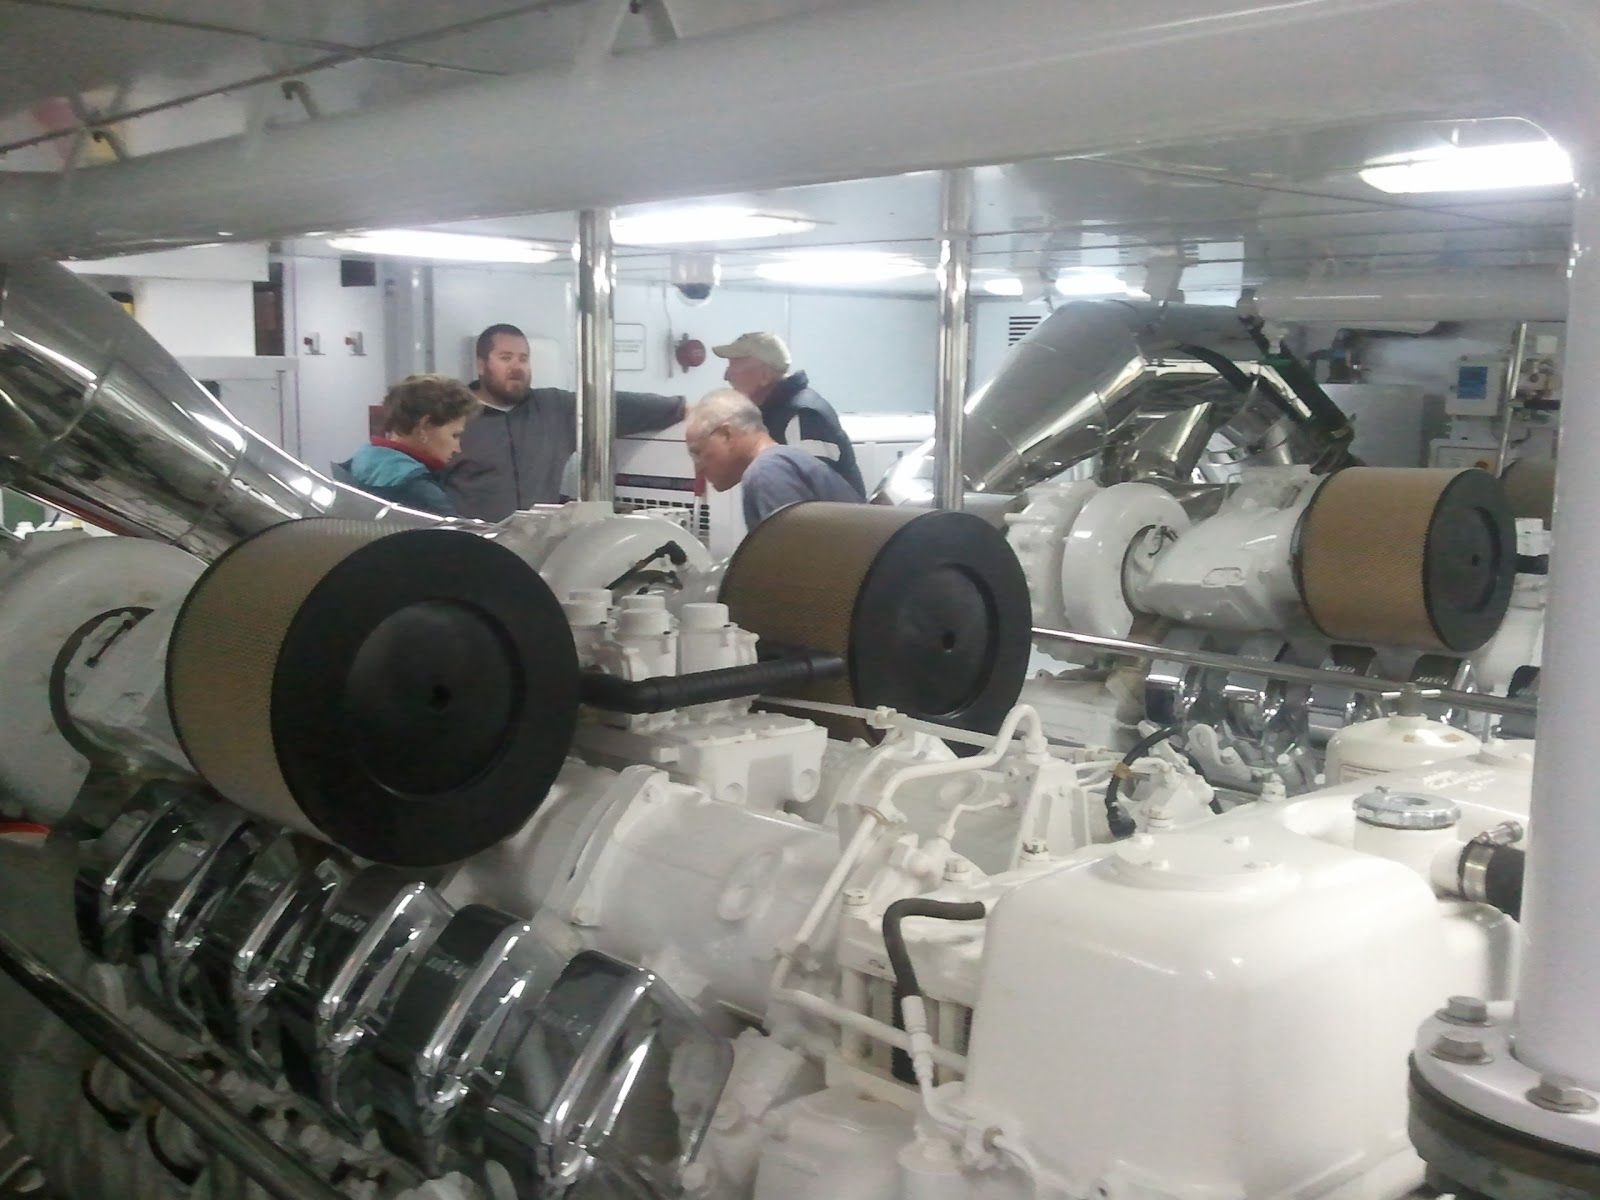 cruise ship engine room tour Google Search